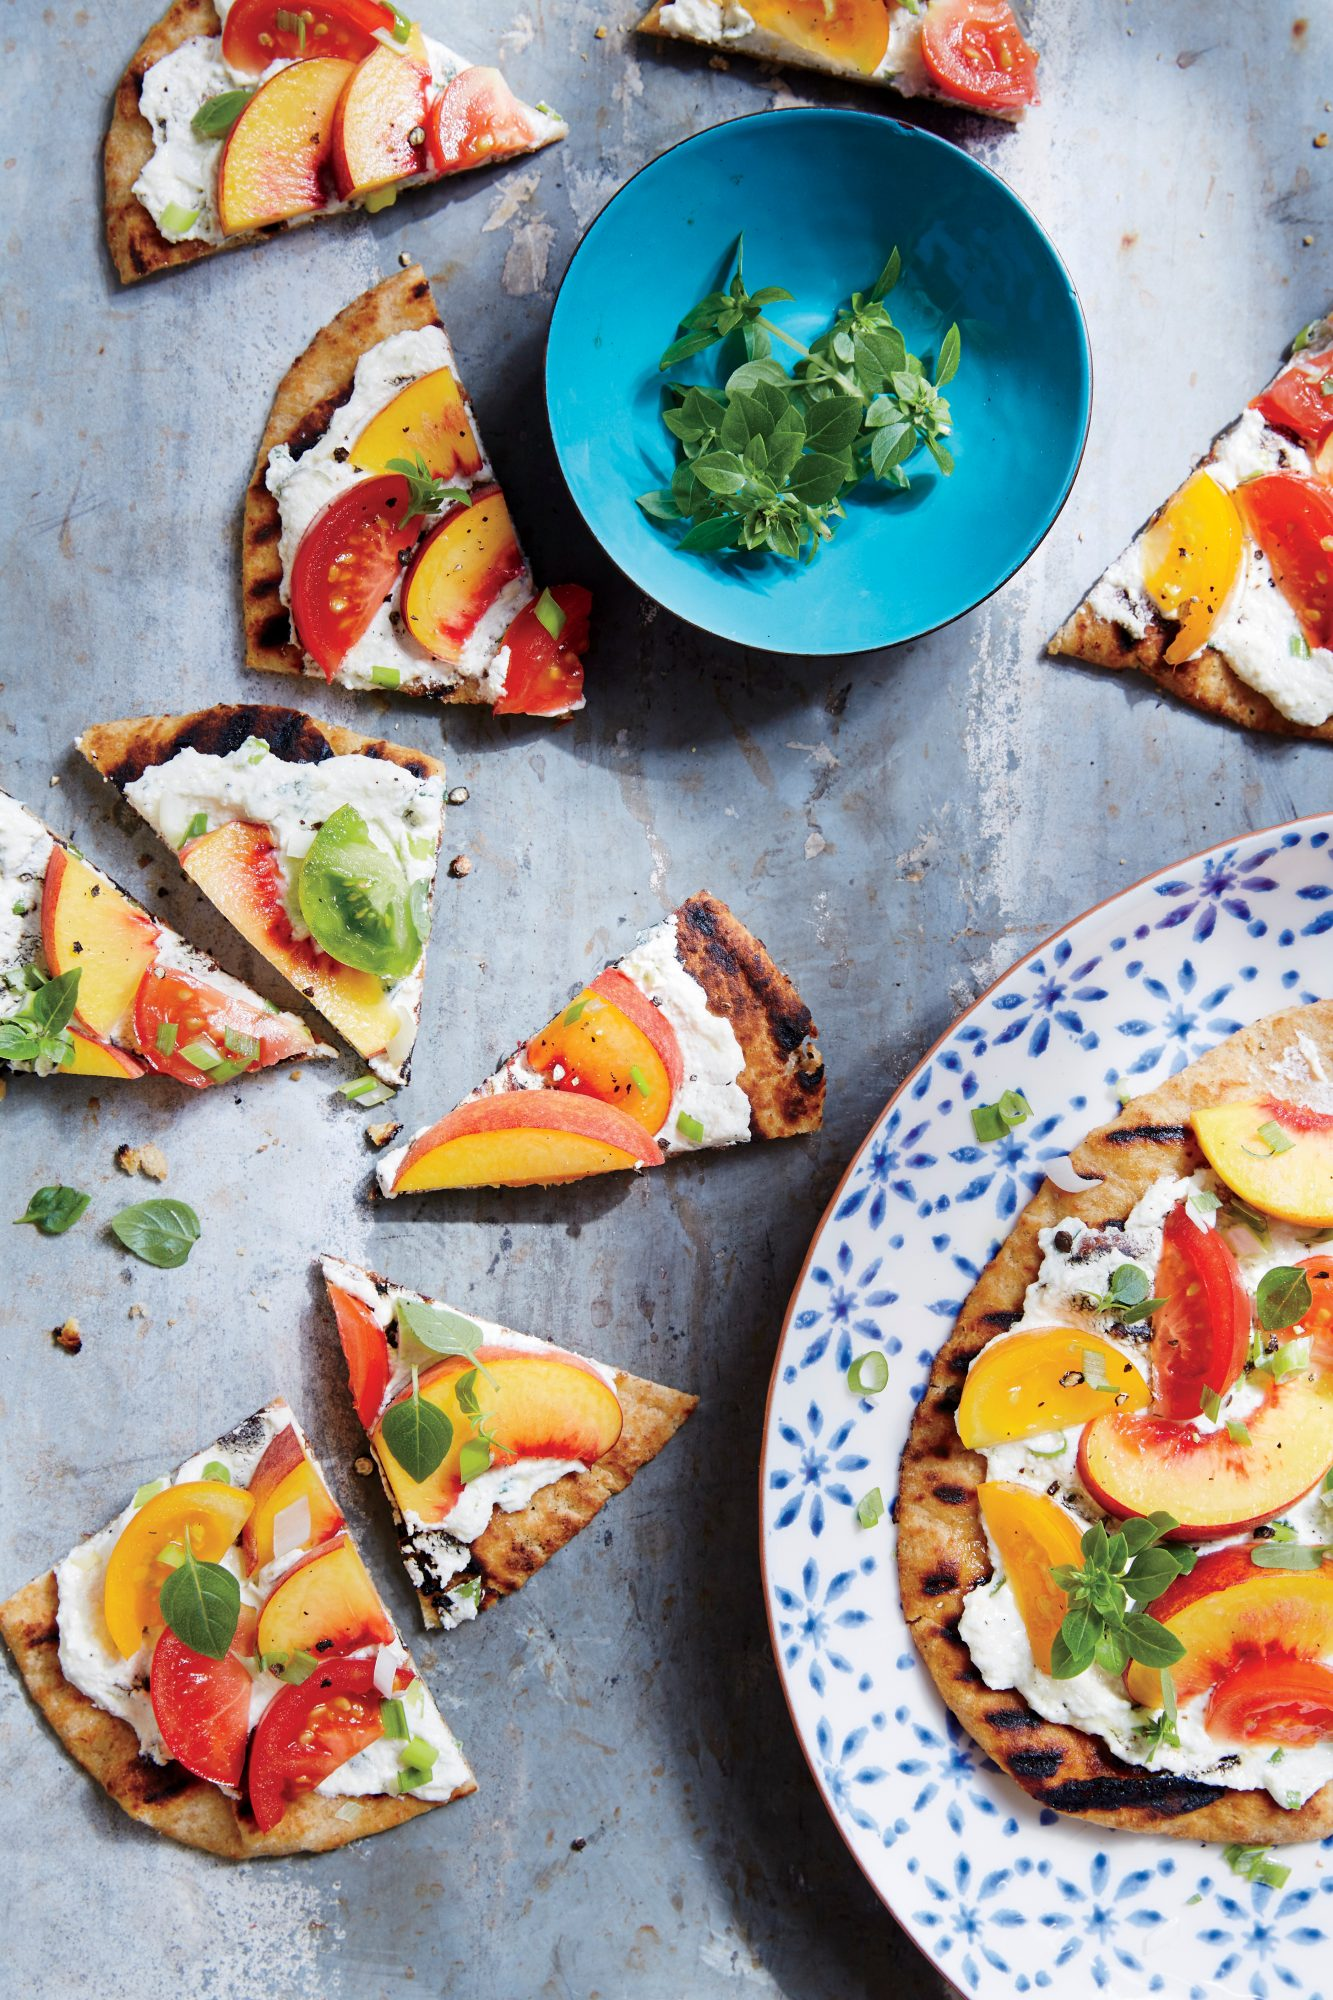 ck-Tomato and Peach Flatbreads and Basil Image